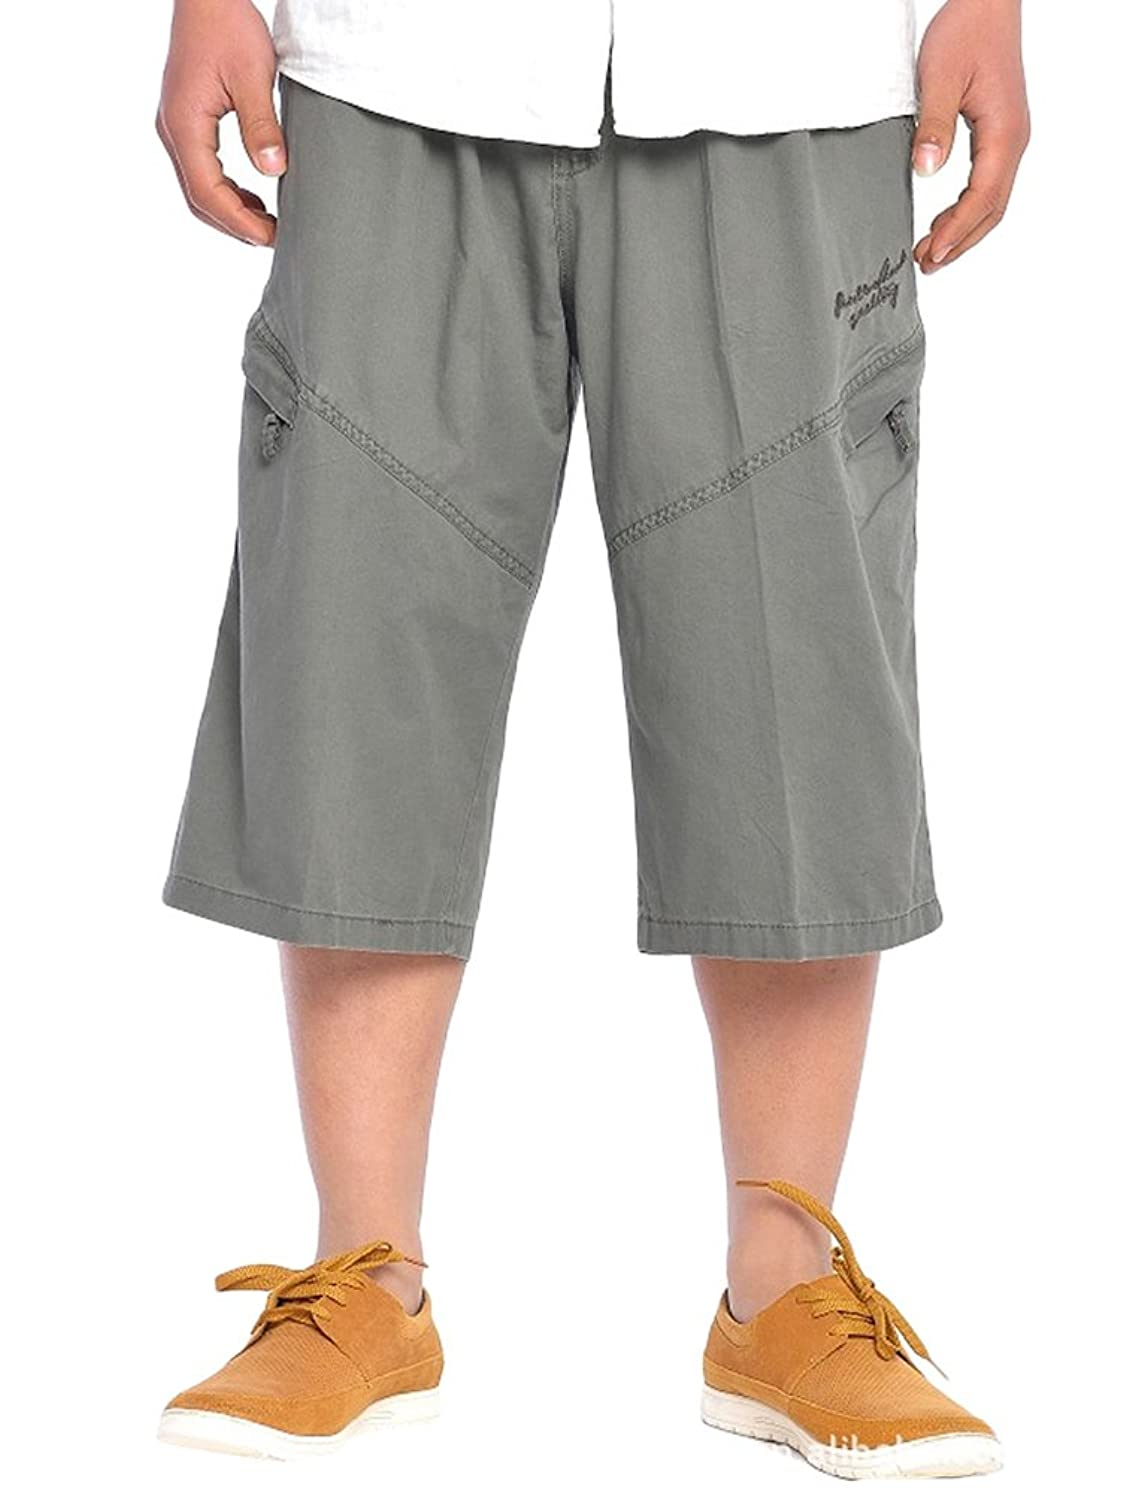 Allonly Mens Camouflage Fashion Cotton Casual Relaxed Fit Multi-Pocket Cargo Shorts